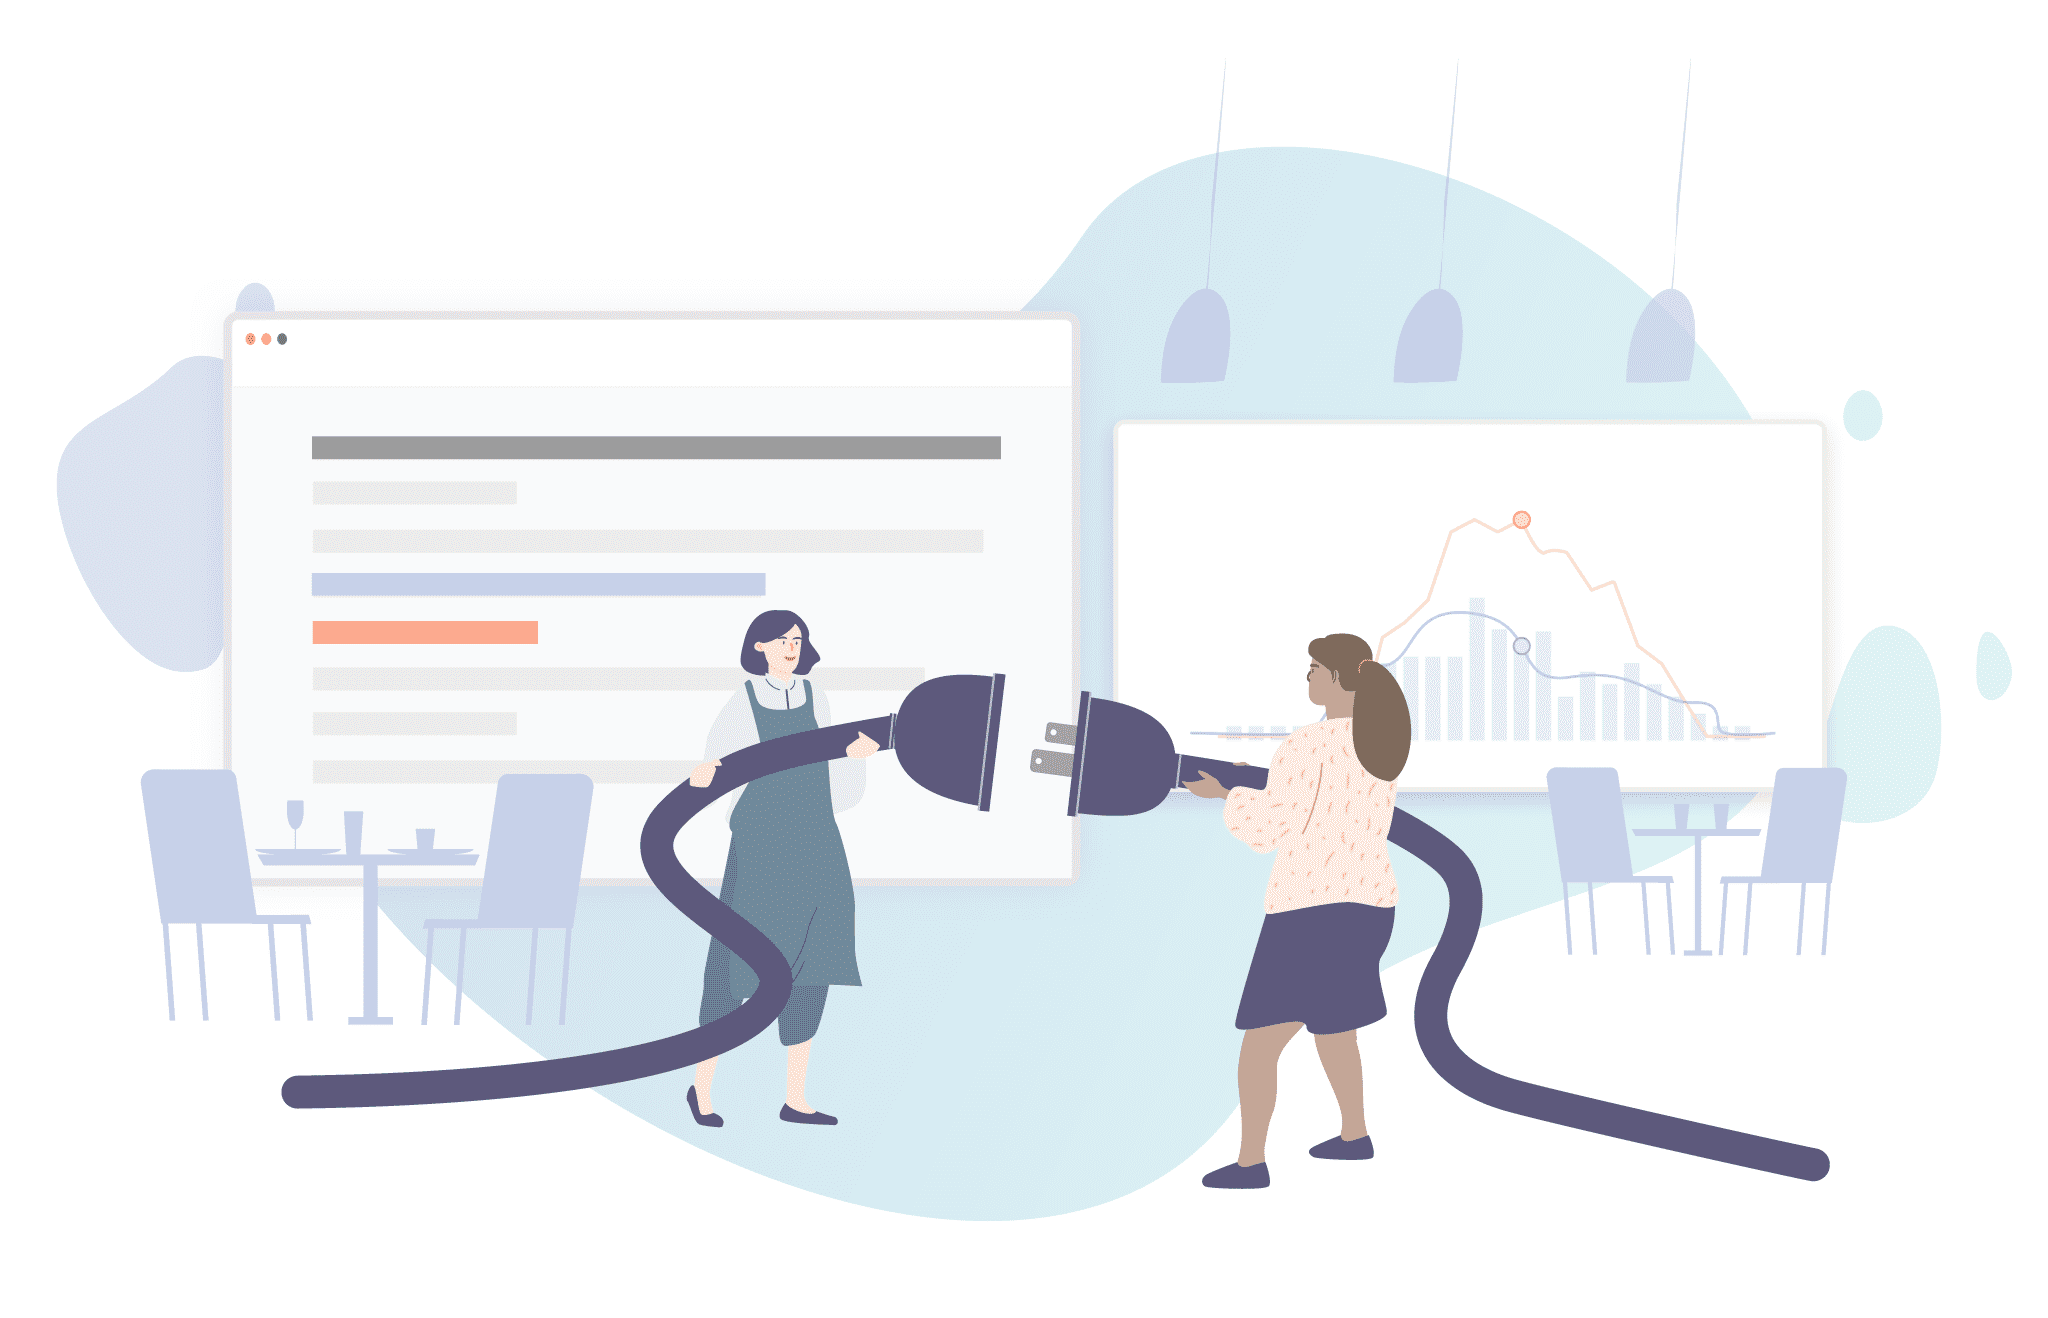 Shift Feedback illustration